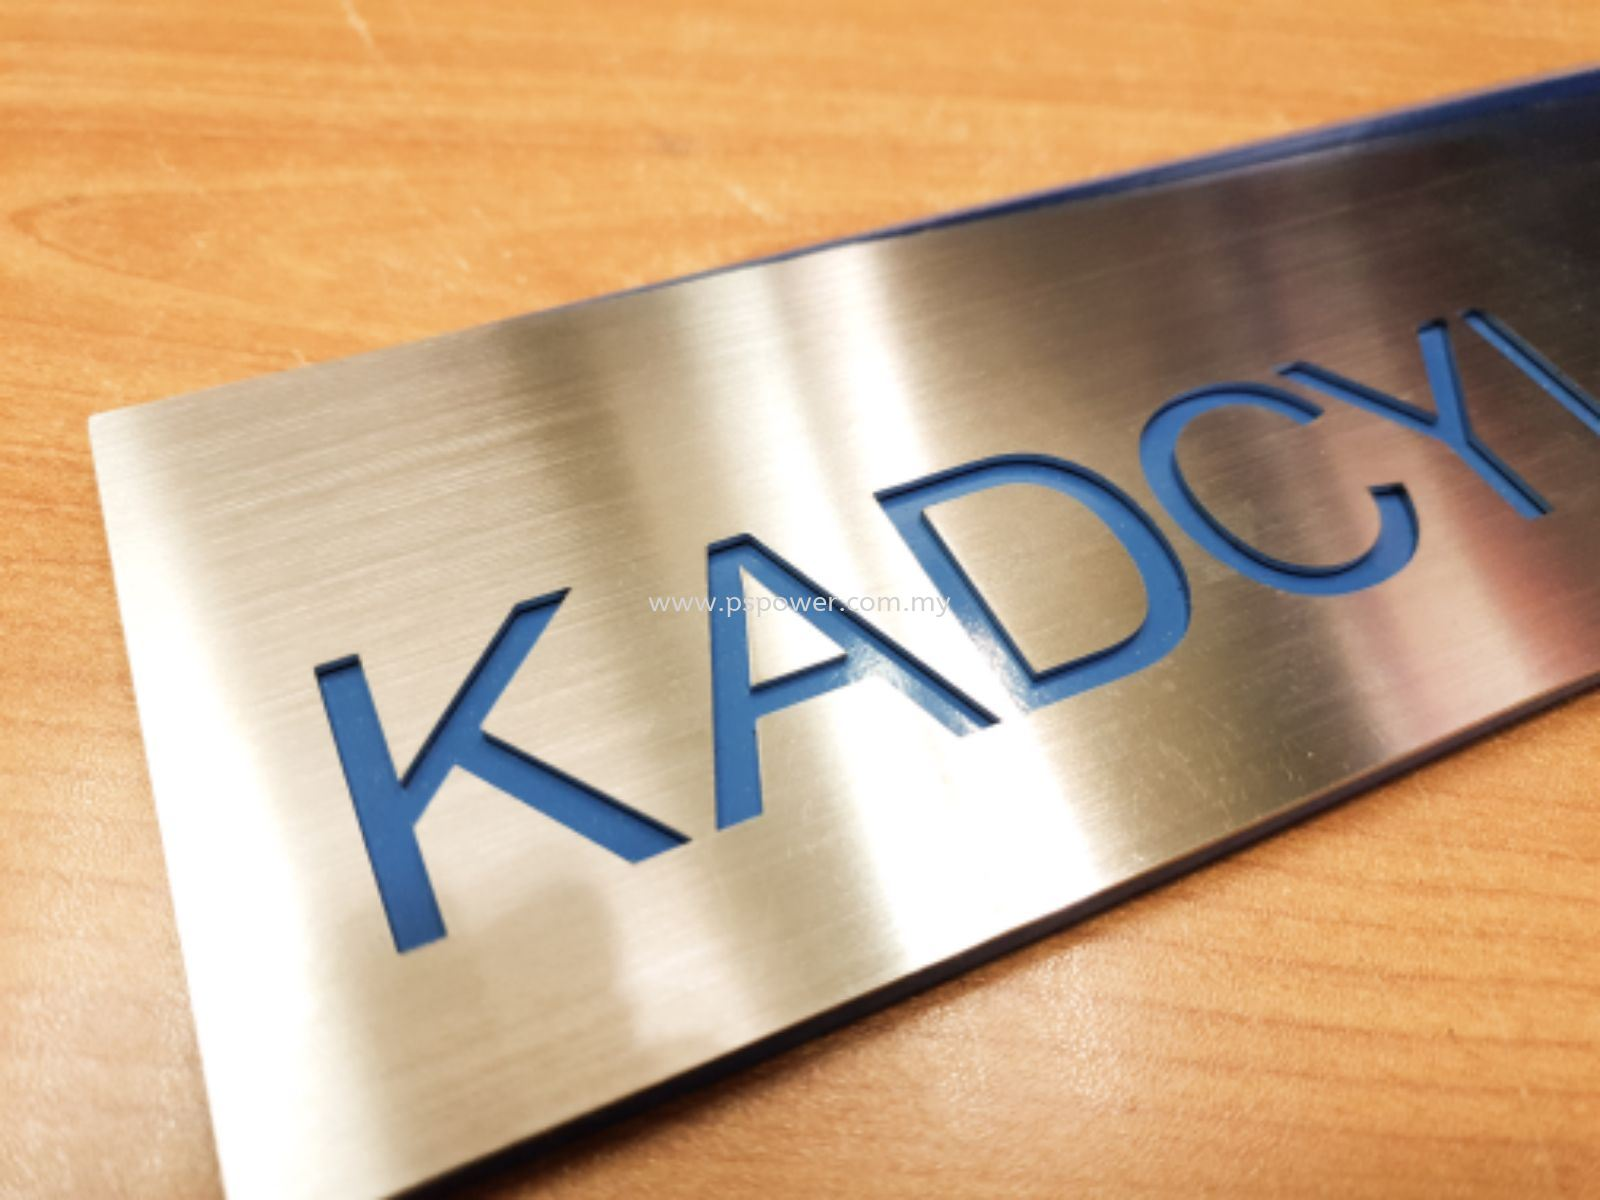 Laser Cut on Stainless Steel Signage